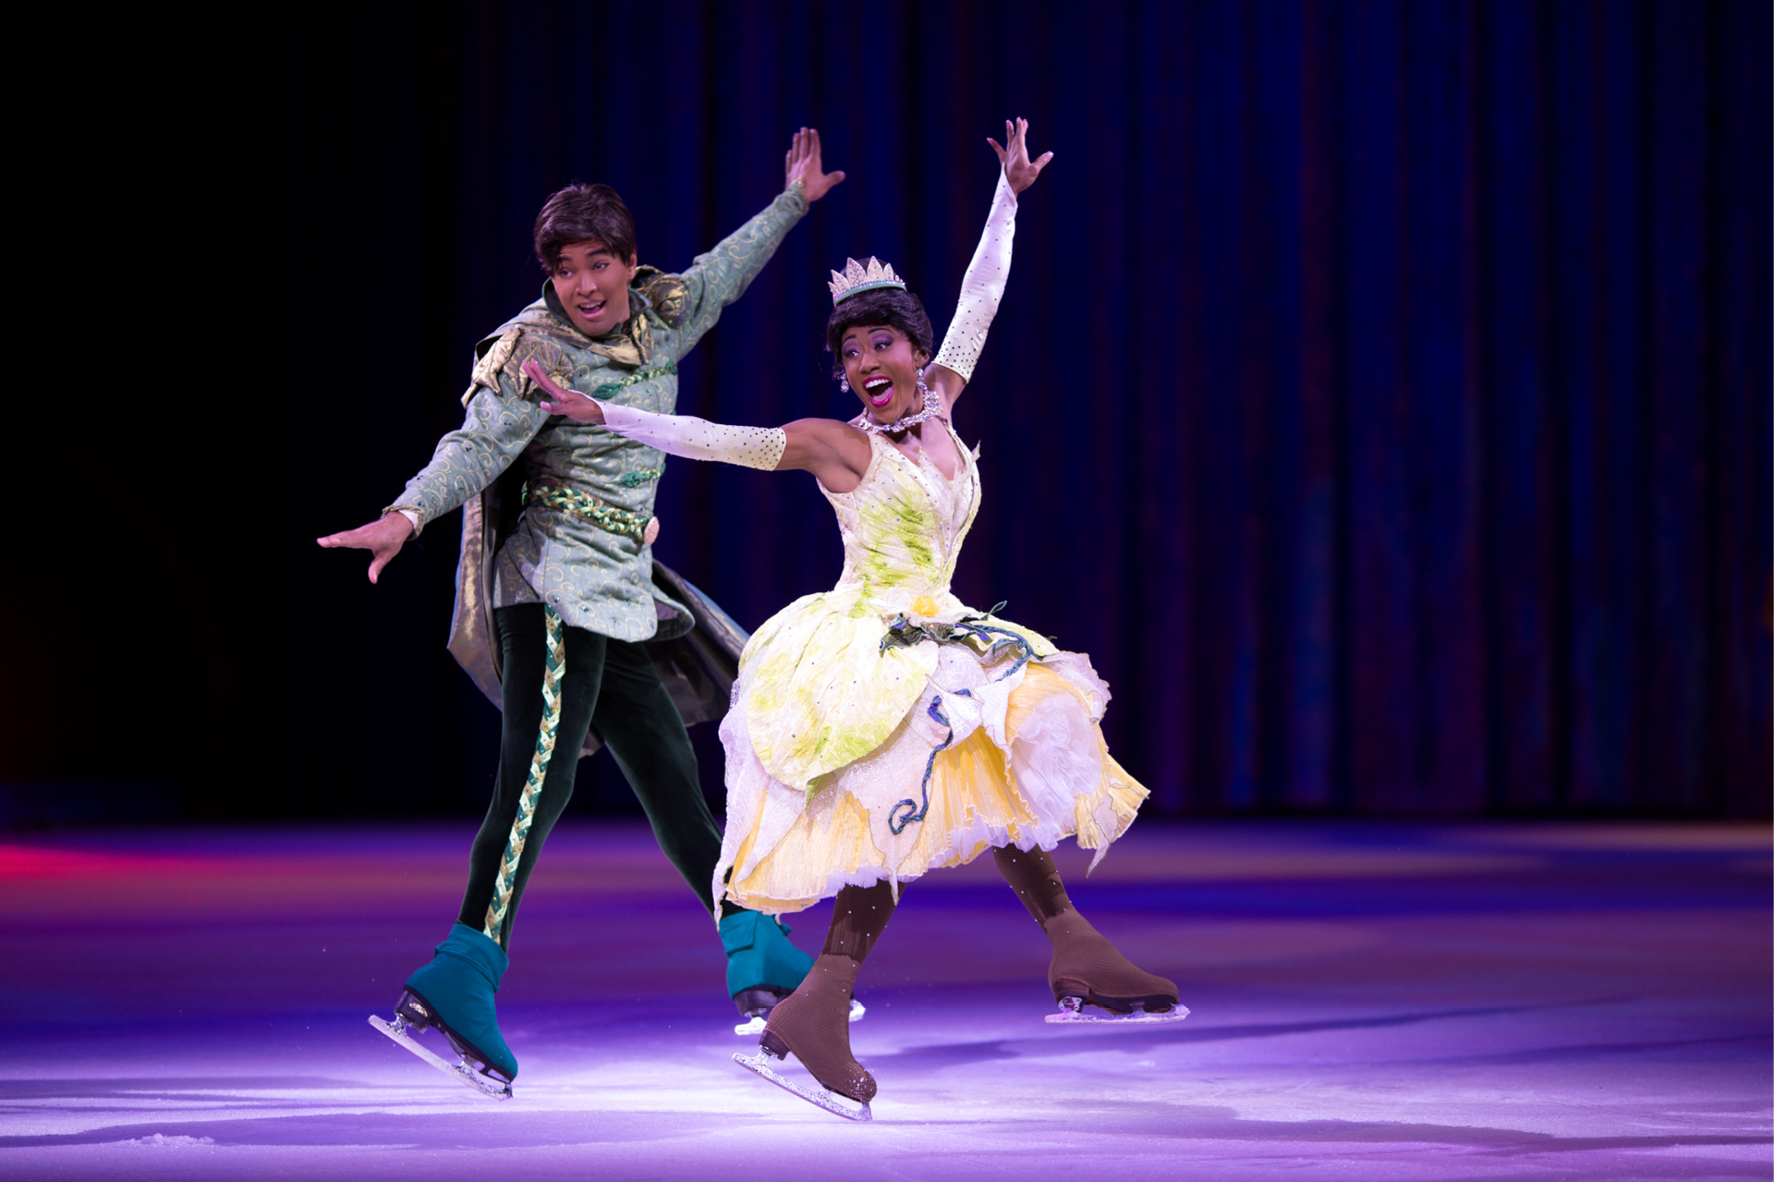 Princess Tiana and Prince Naveen from Disney's Princess & the Frog